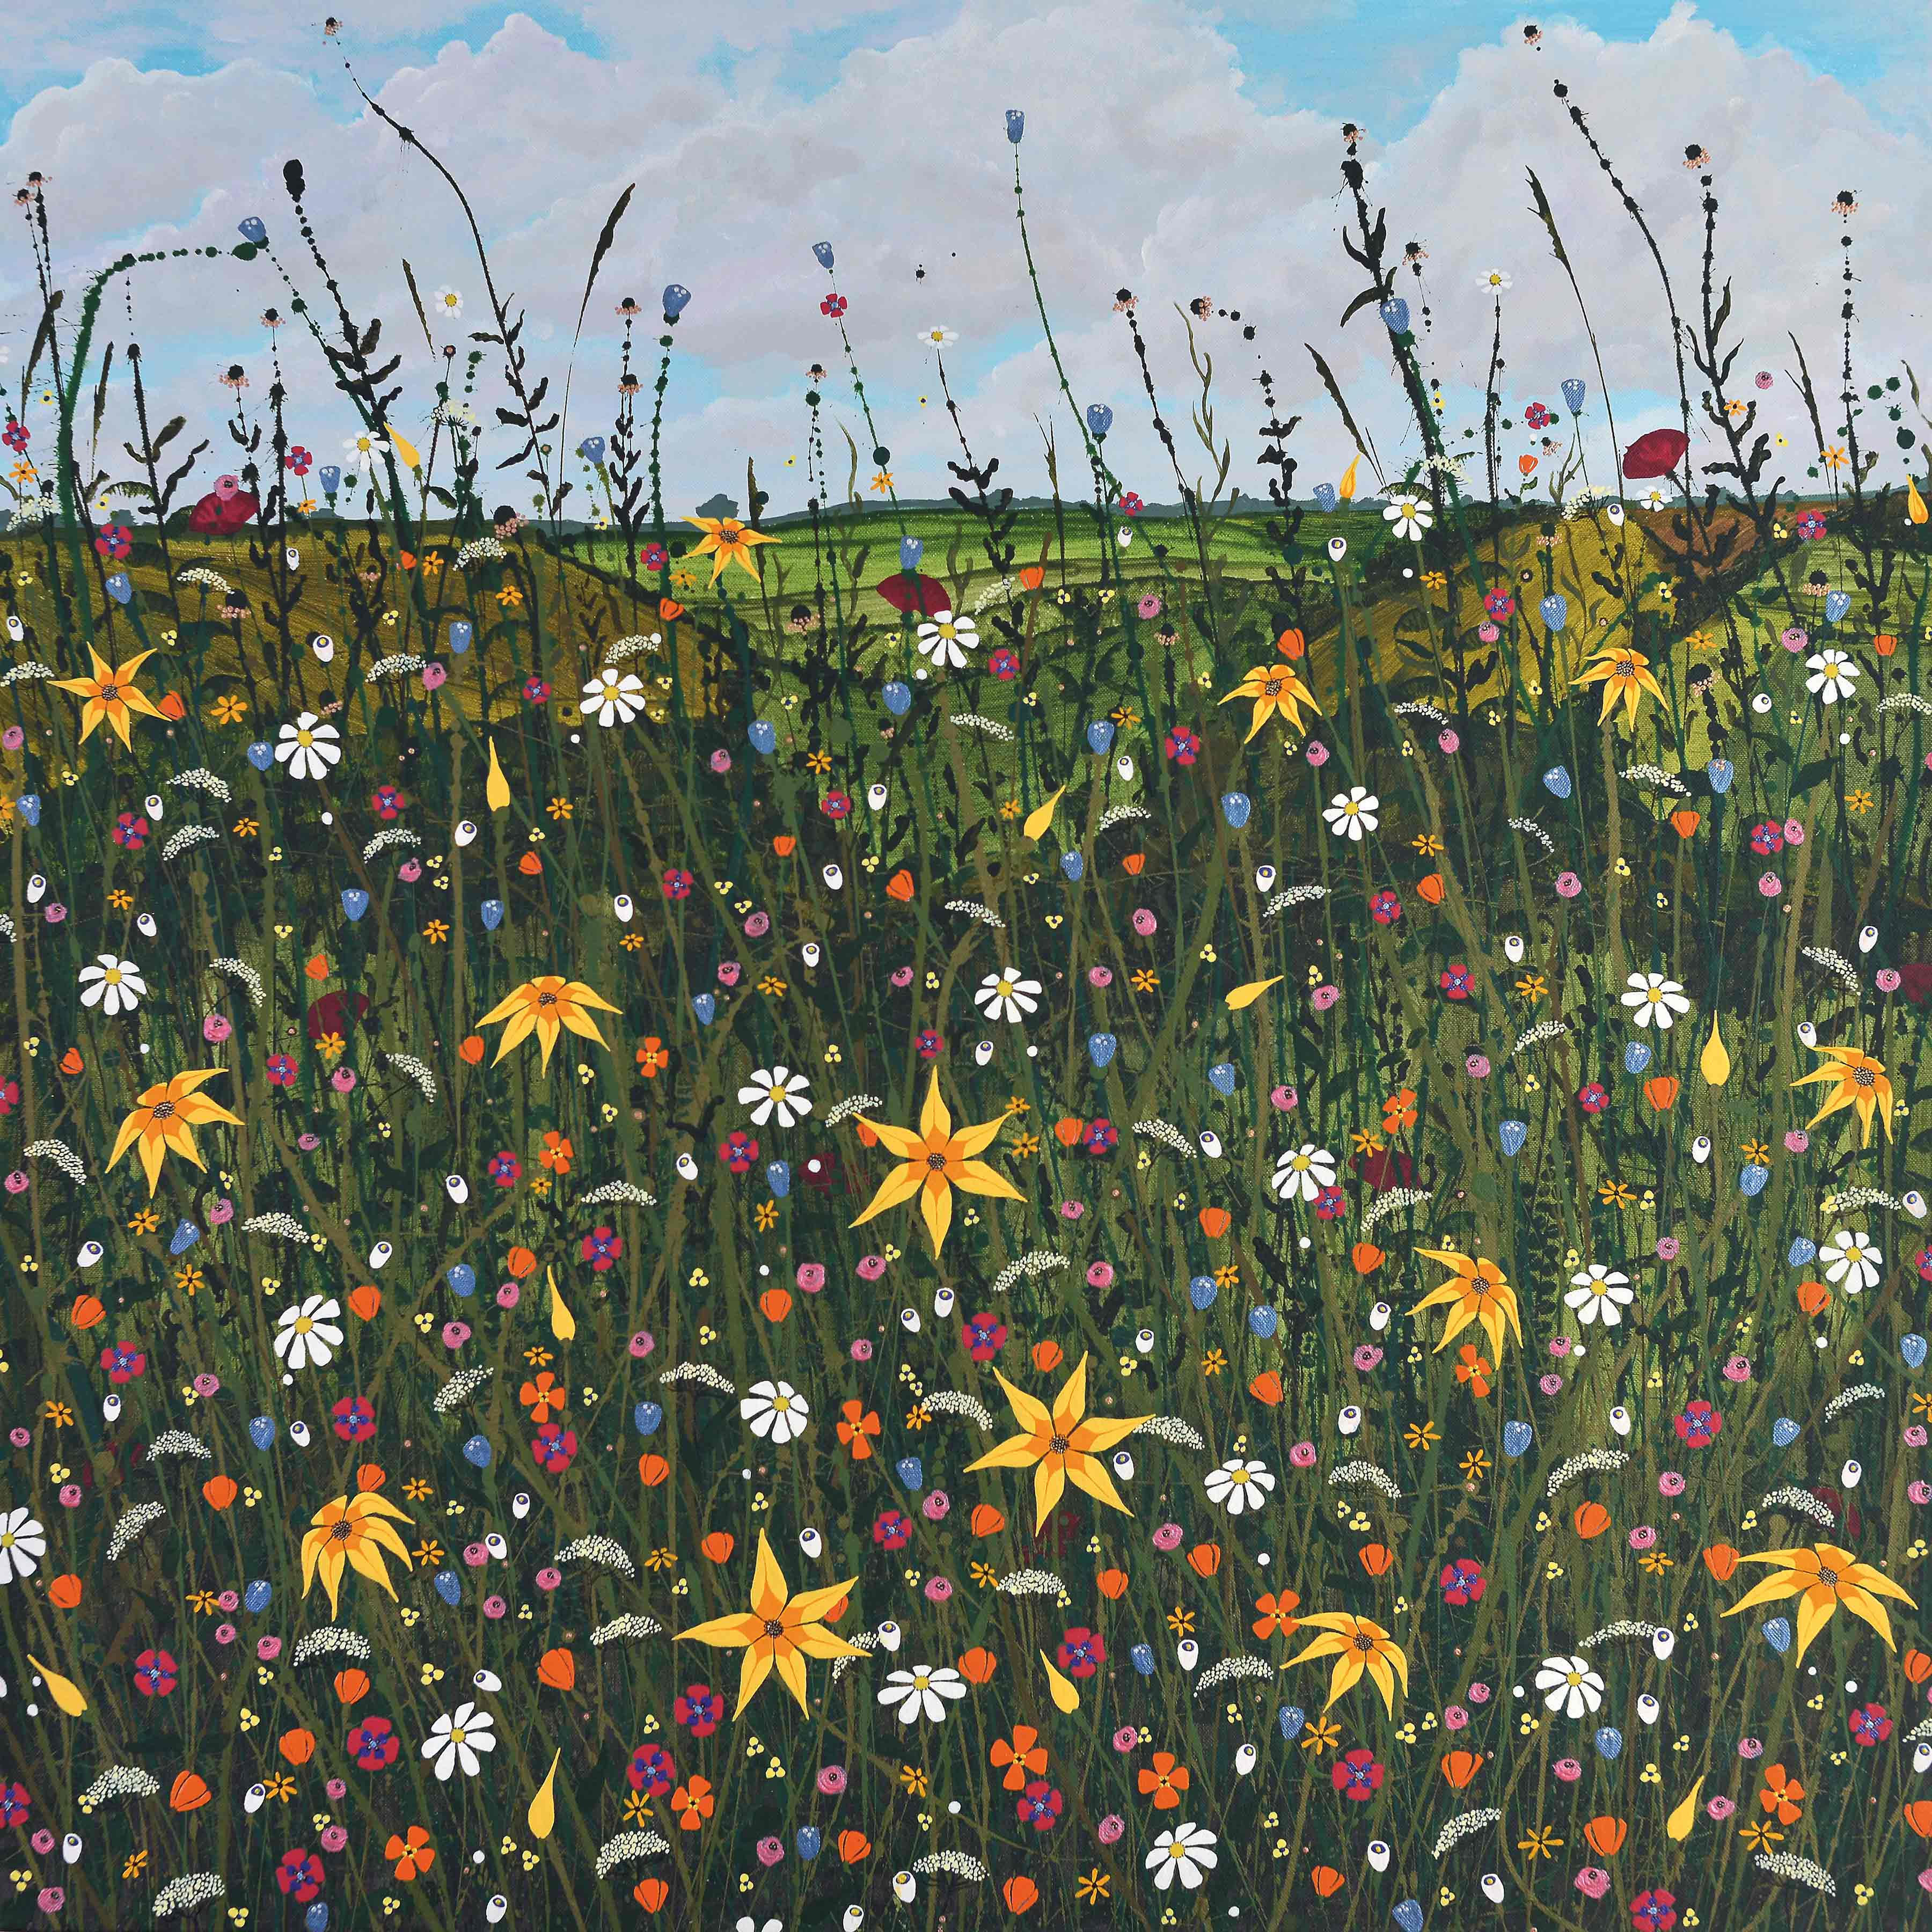 Art Greeting Card by Carla Vize-Martin, Nature's Way, Mixed Media, Flower meadow